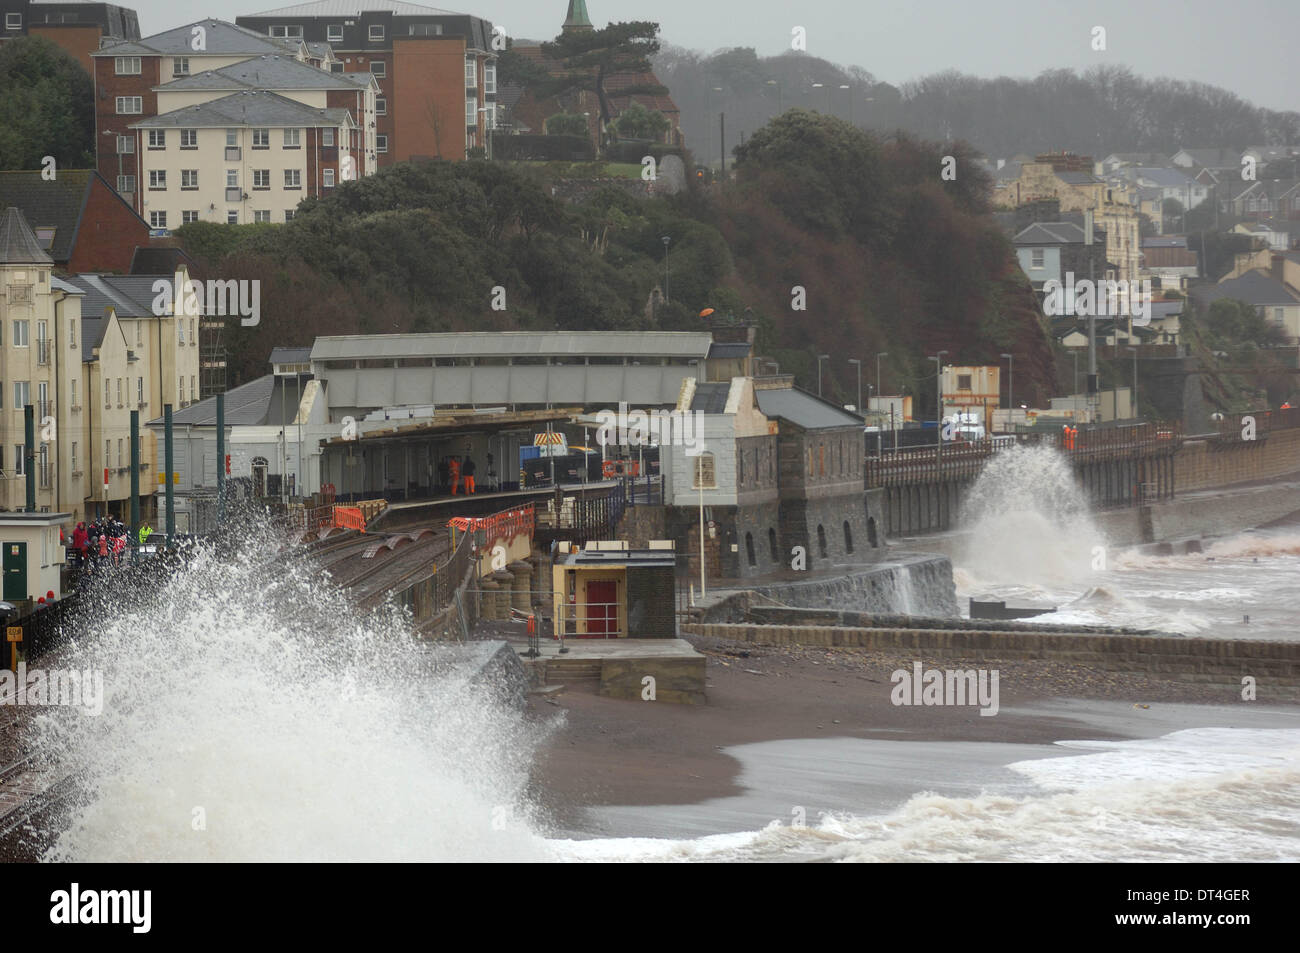 Dawlish, UK. 8th Feb, 2014. The damaged railway station at Dawlish in Devon England continues to be battered by storms. The rail line to Cornwall is washed away just outside the station.  Credit Paul Glendell - Stock Image